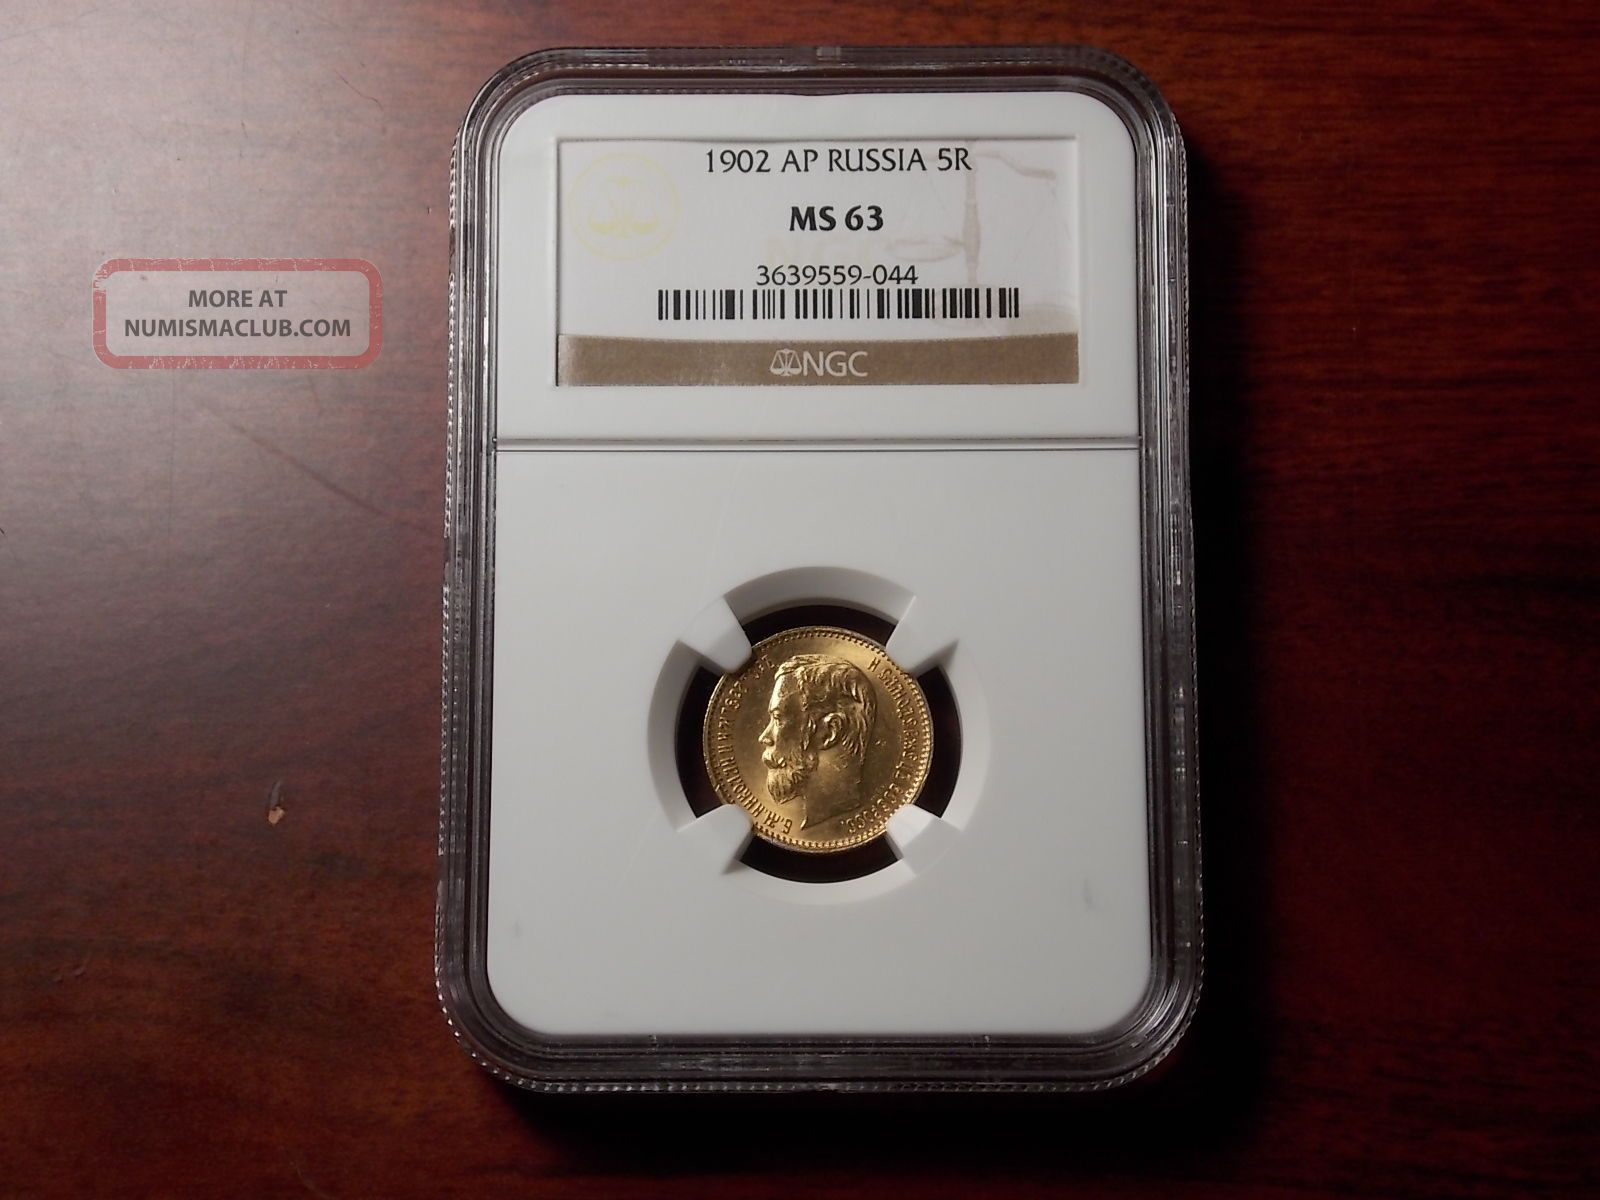 1902 Ap Russian 5 Rouble Gold Coin Ngc Ms - 63 Russia photo